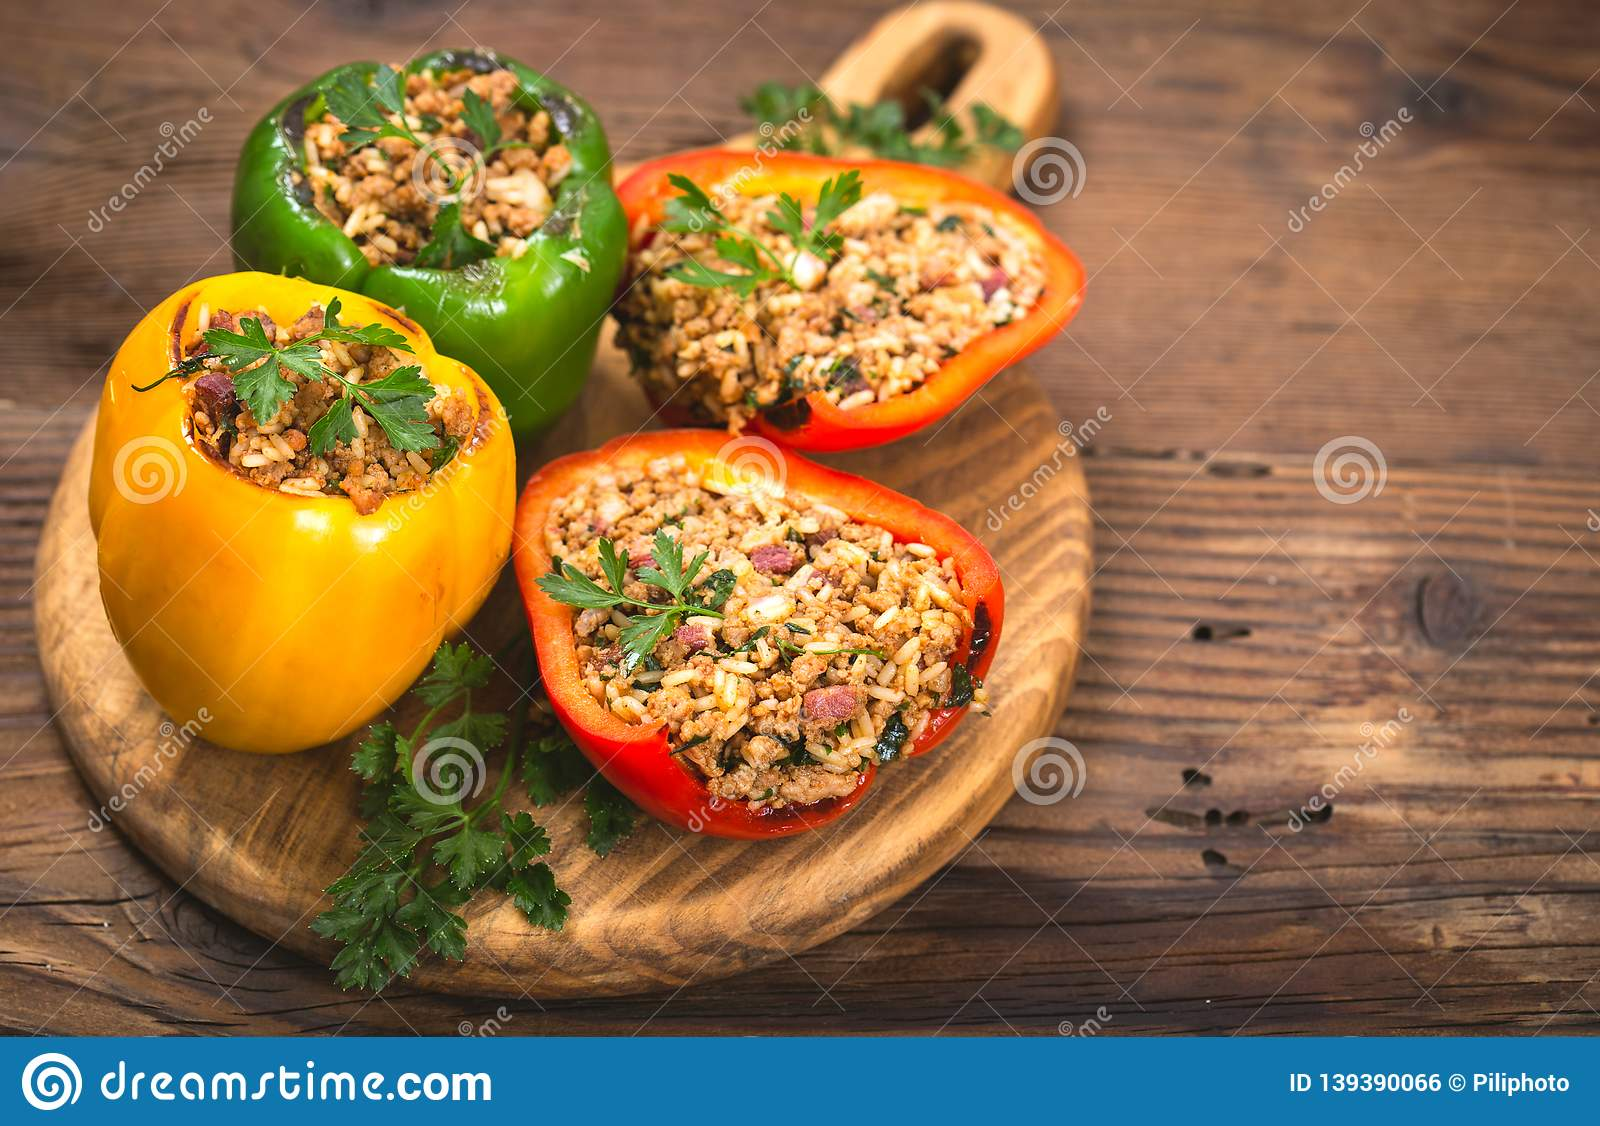 Stuffed peppers with meat and rice